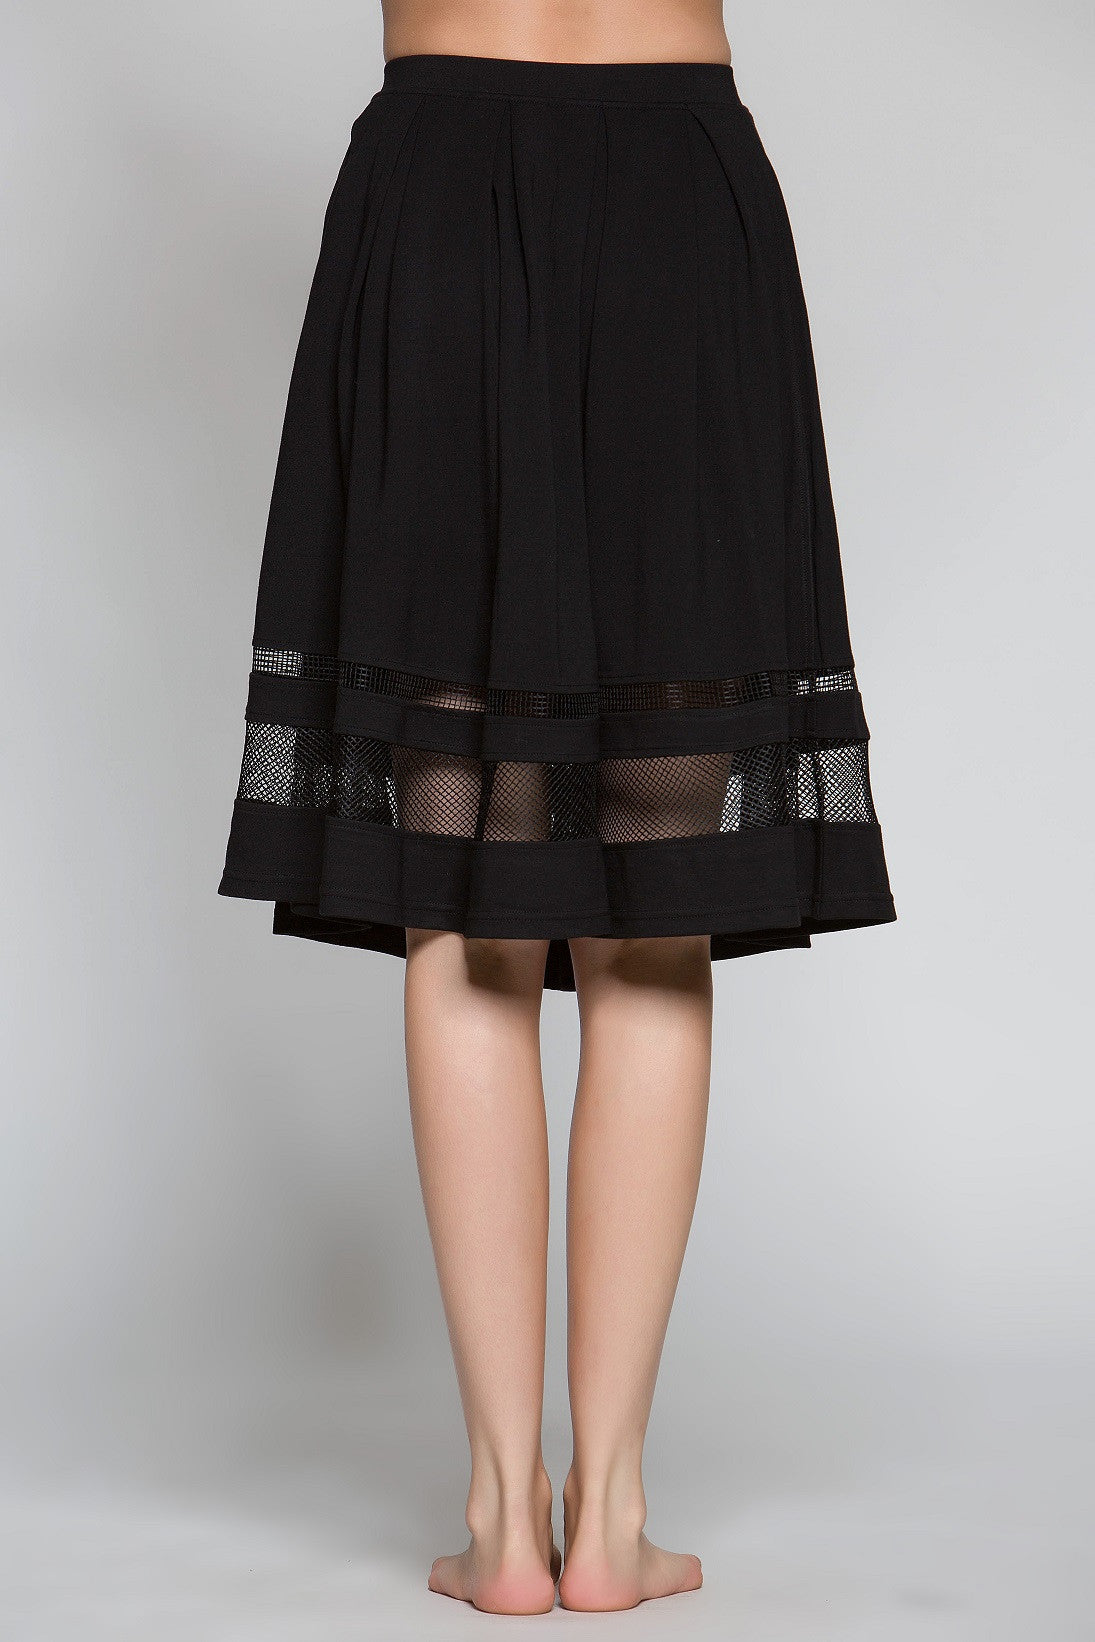 Mesh Around II Skirt